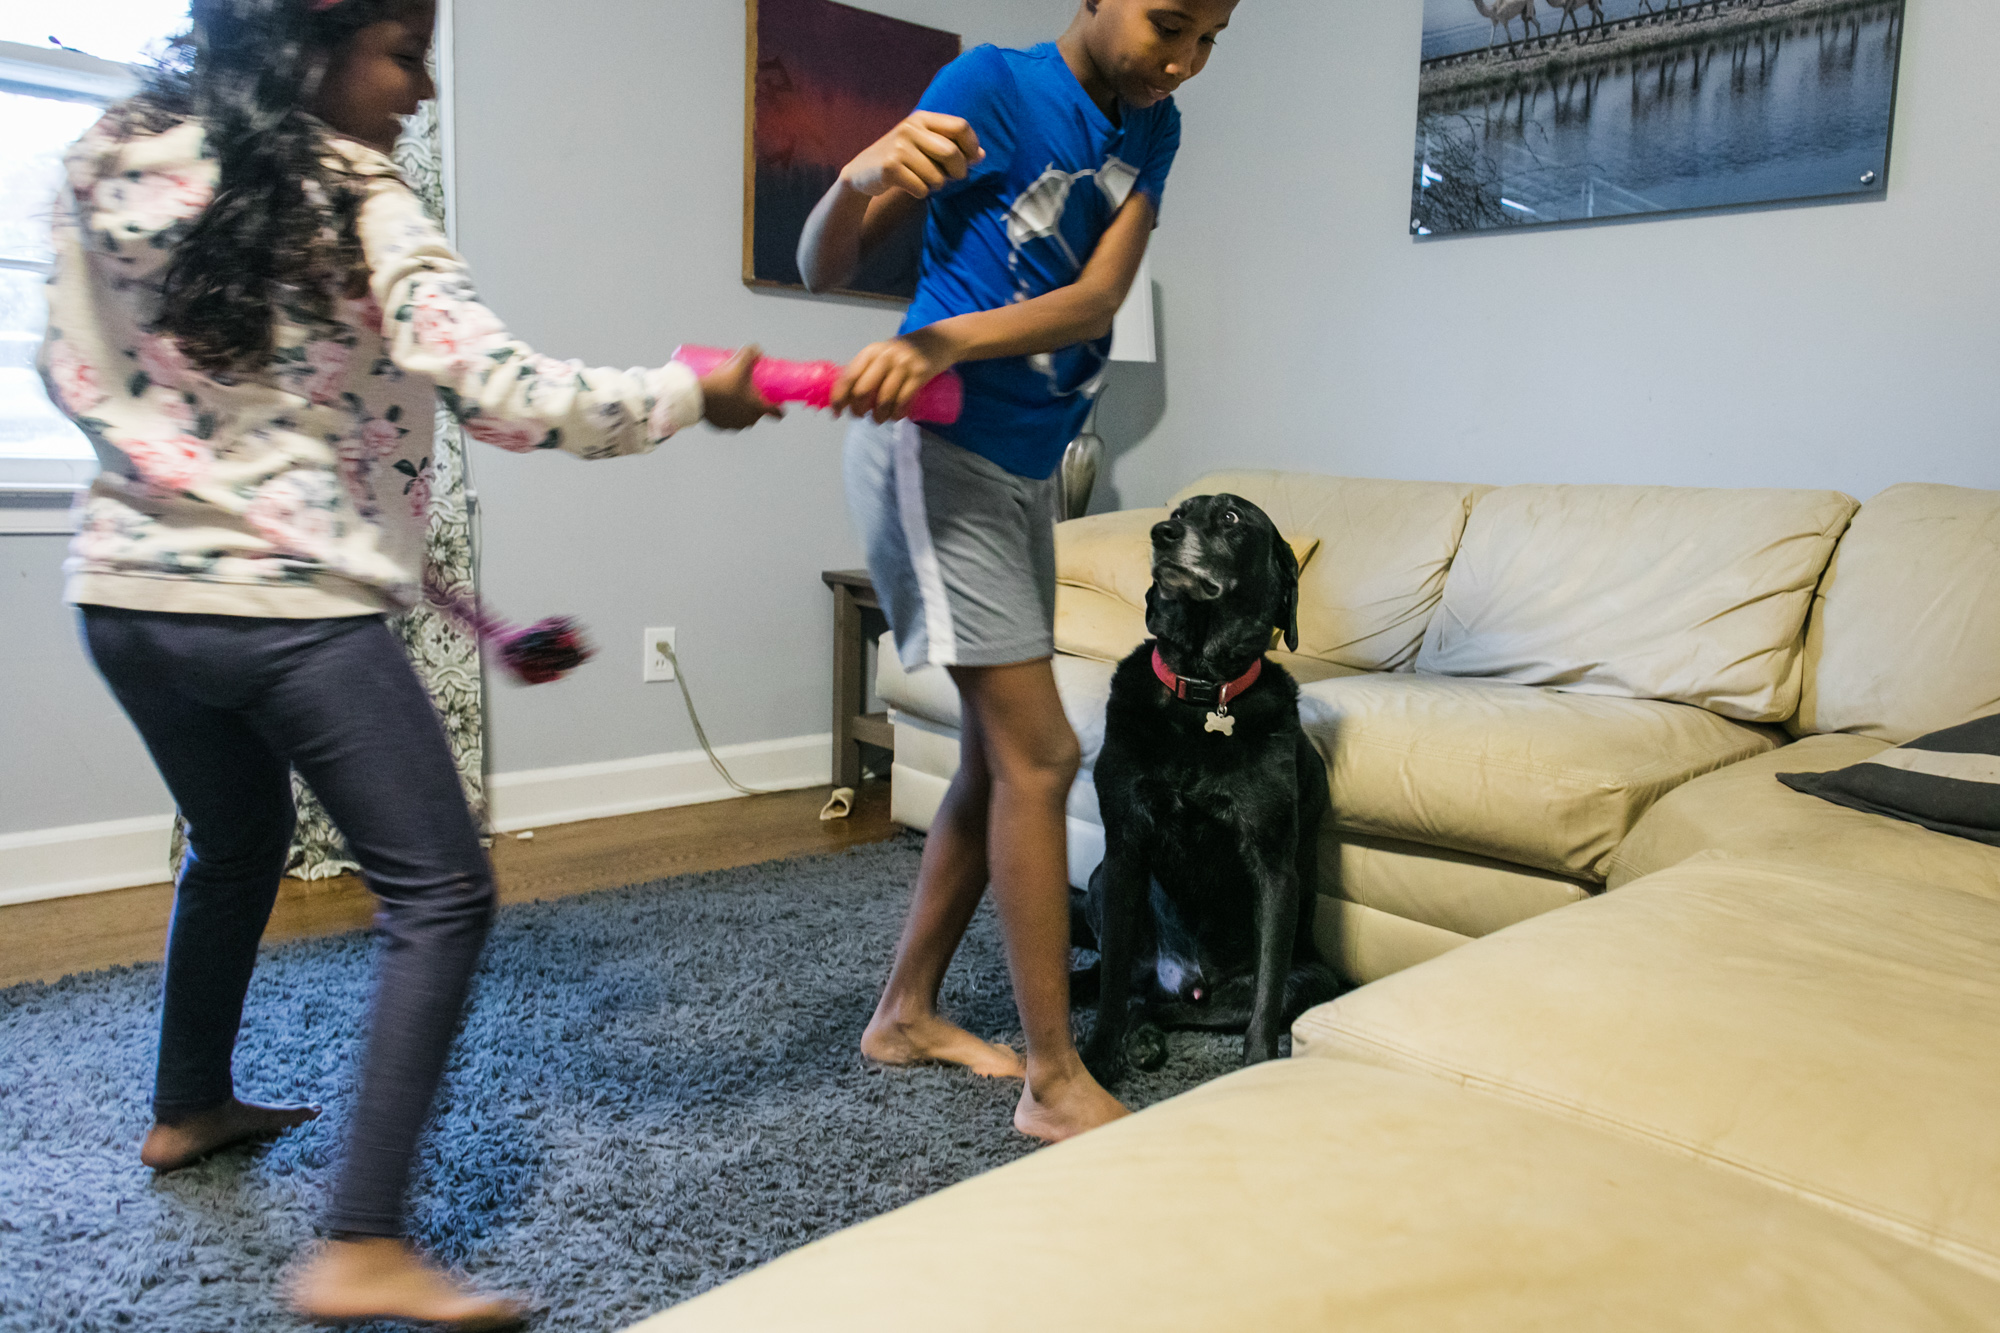 a dog watches incredulously as a boy and girl play tug of war with his dog toy